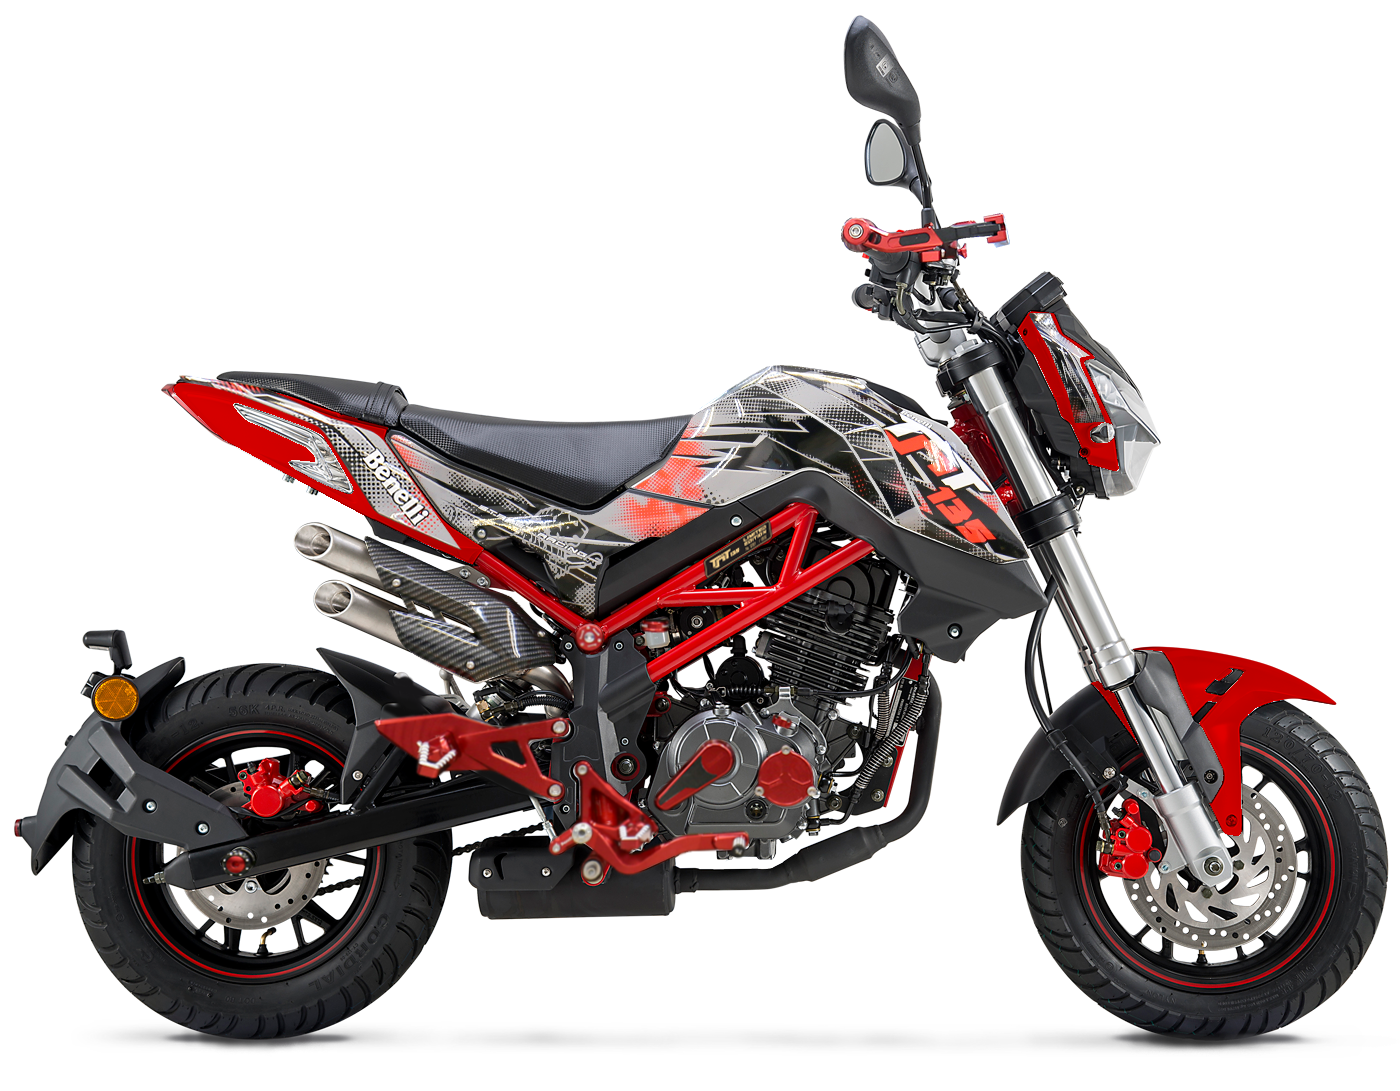 Benelli tnt 135 le launched in malaysia imotorbike mforce bike holdings the malaysian distributor for benelli keeway and sym motorcycles has just launched the benelli tnt 135 le with the le in its name altavistaventures Image collections